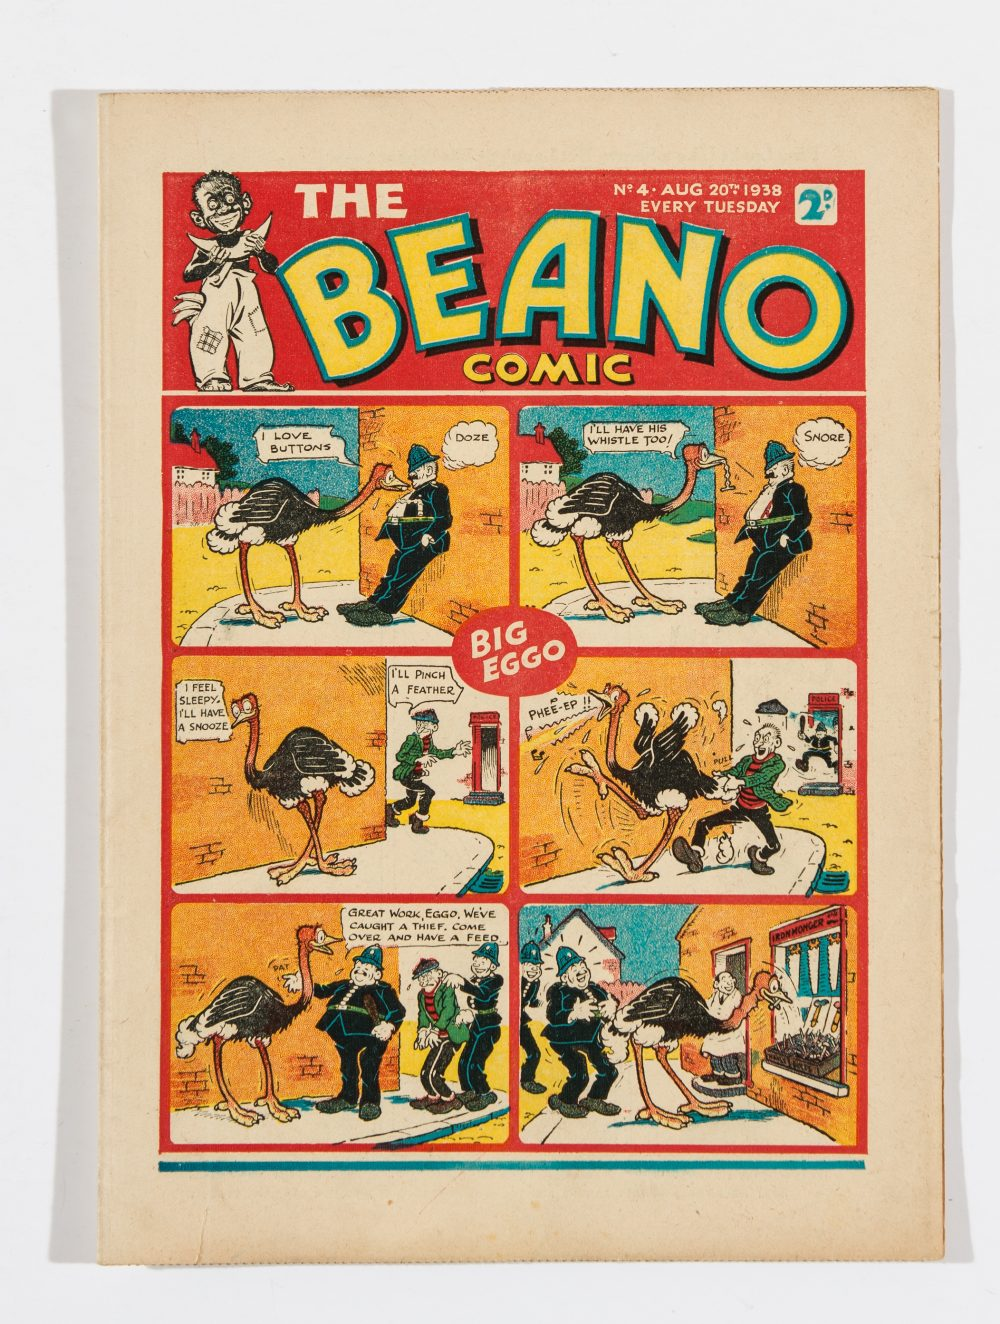 Lot 37 - Beano No 4 (1938). Big Eggo, Lord Snooty and his Pals, Morgyn The Mighty star. Bright, fresh covers,